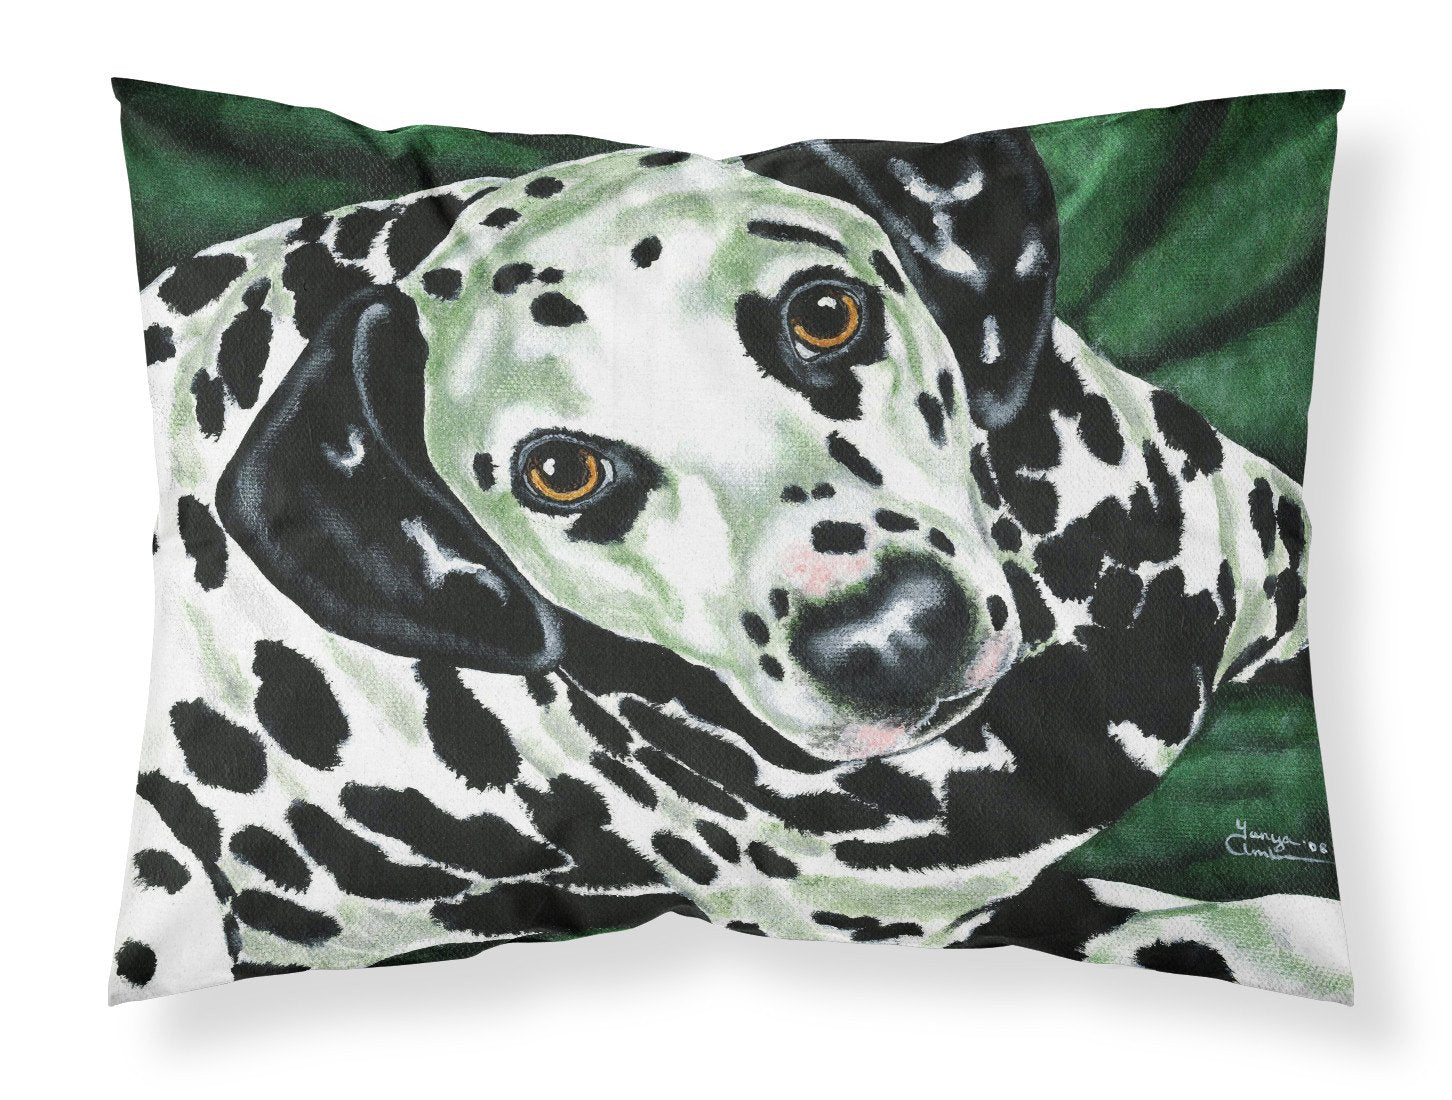 Buy this Emerald Beauty Dalmatian Fabric Standard Pillowcase AMB1359PILLOWCASE